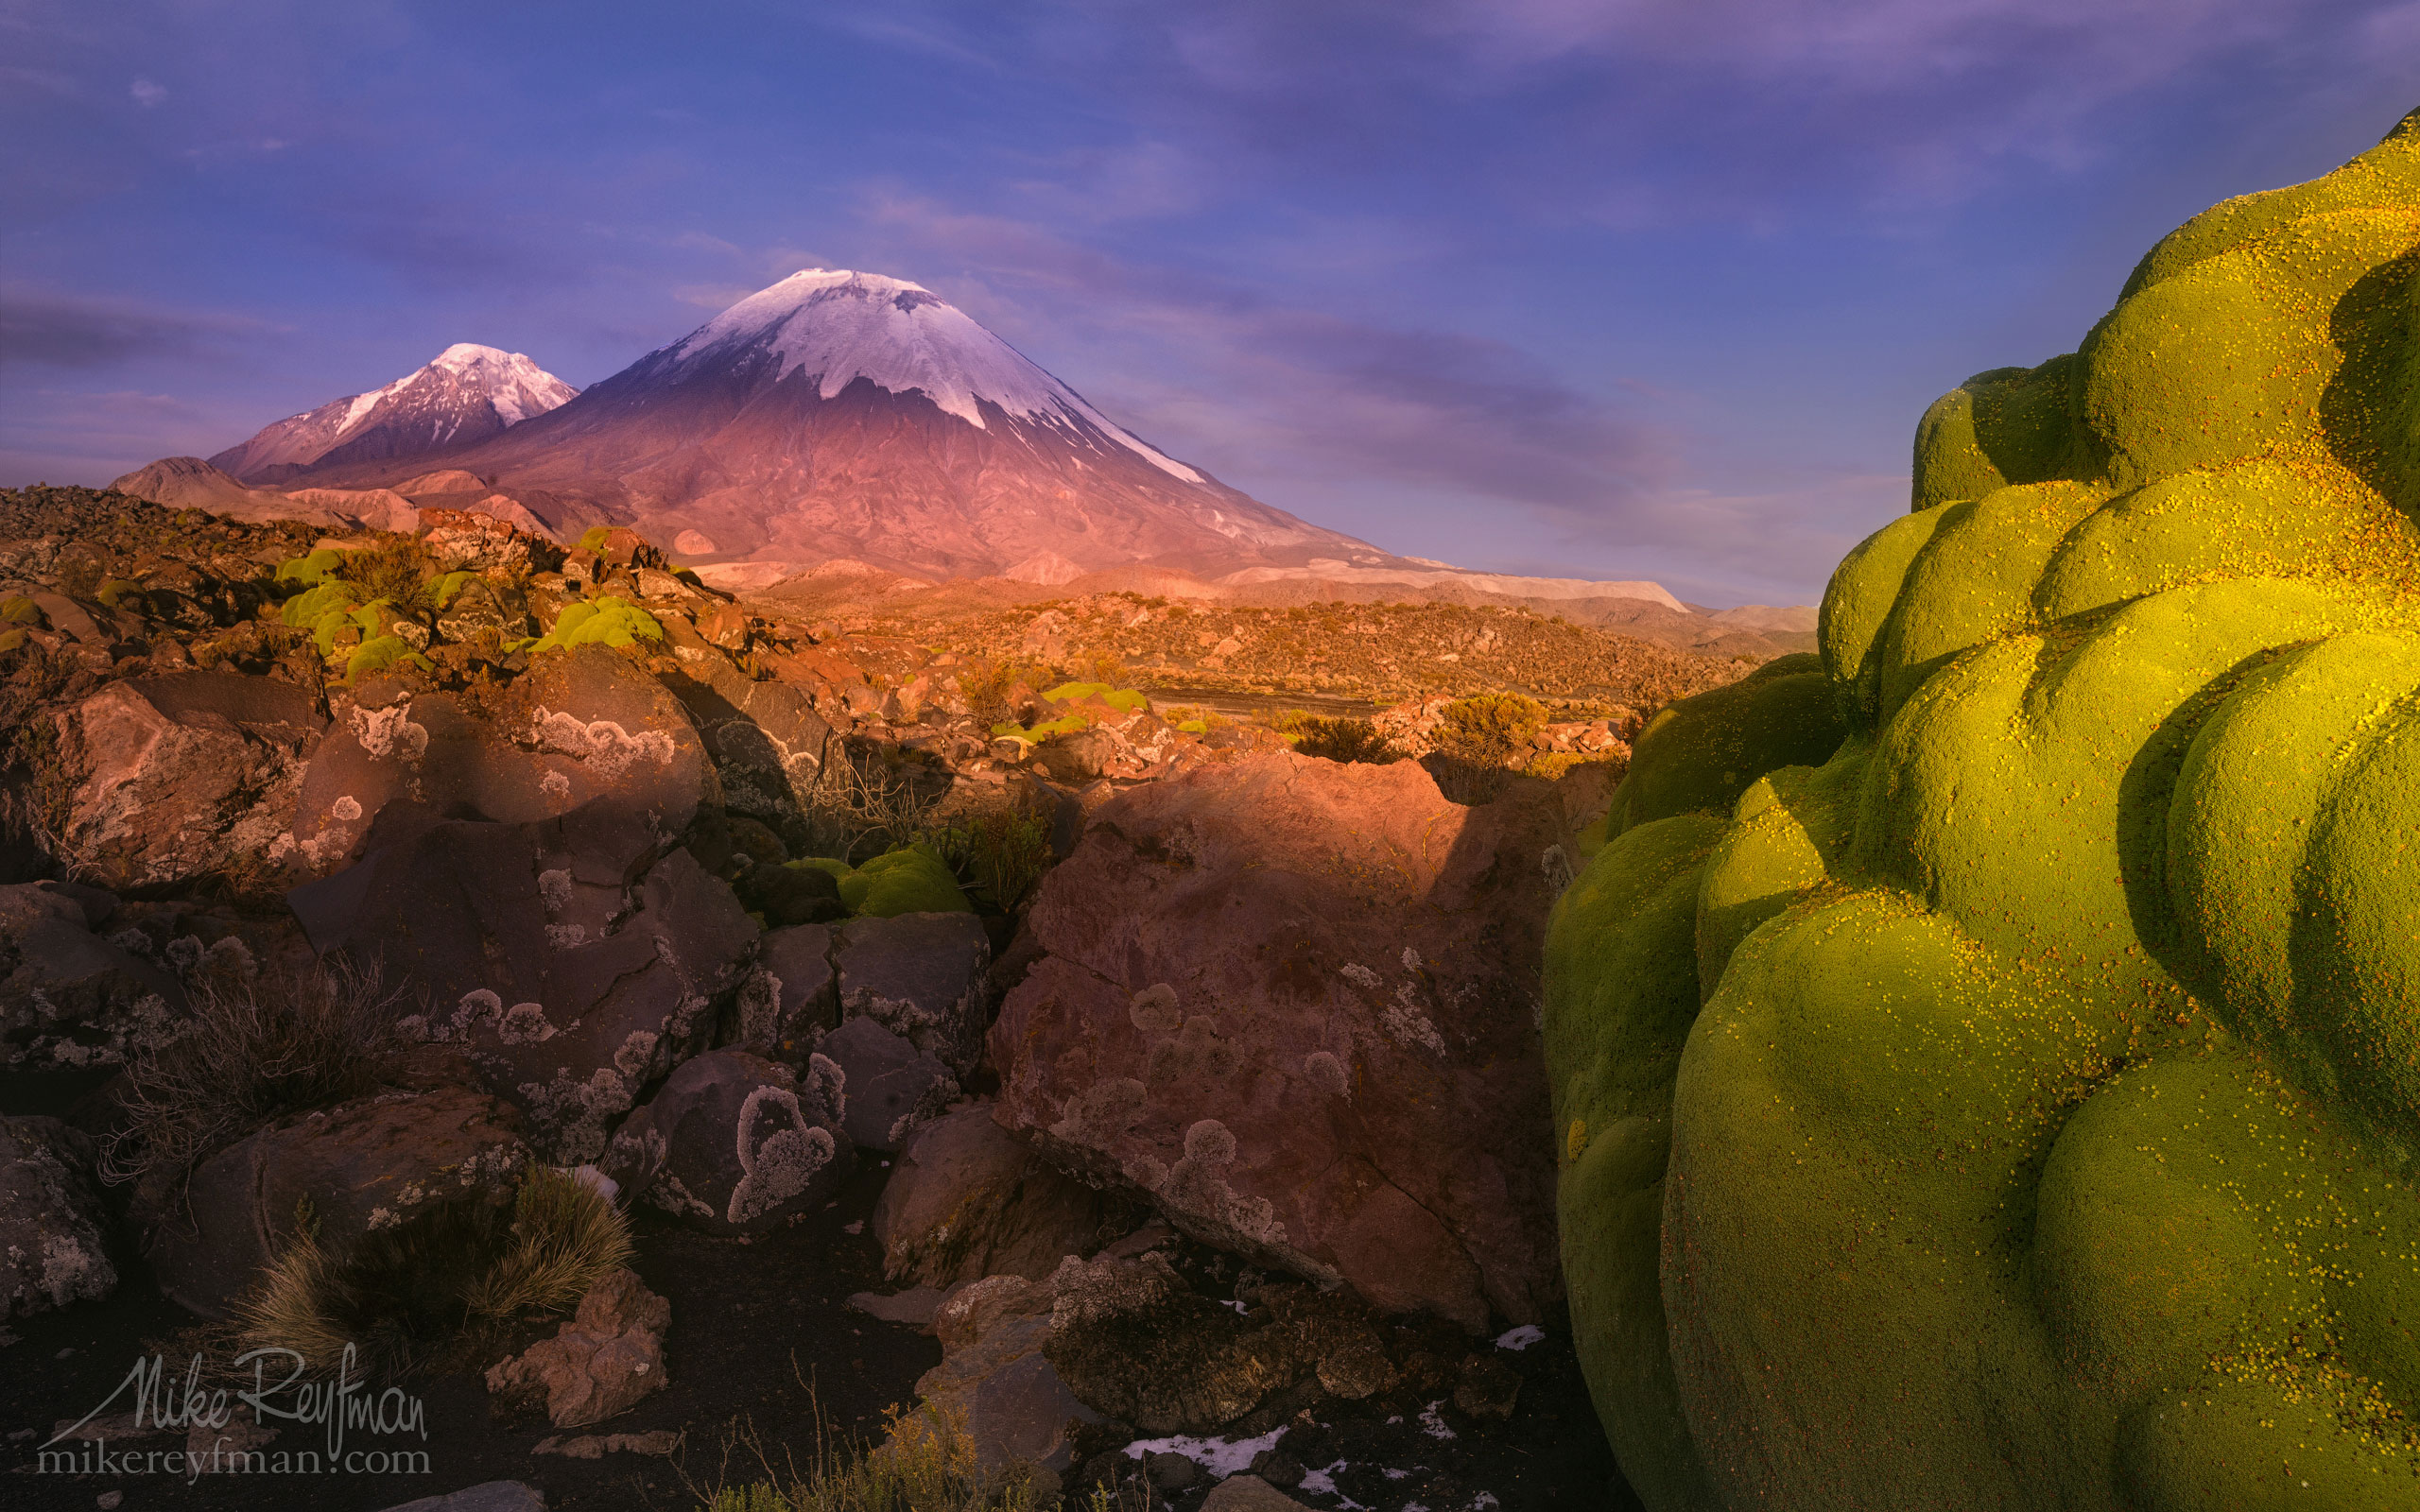 Parinacota and Pomerape Stratovolcanos (Nevados de Payachata) with Yareta plants on the foreground. Lauca Biosphere Reserve. Altiplano, Chile AA1-AIR3211_N - Atacama and Altiplano. The Driest Desert and The High Plain - Mike Reyfman Photography